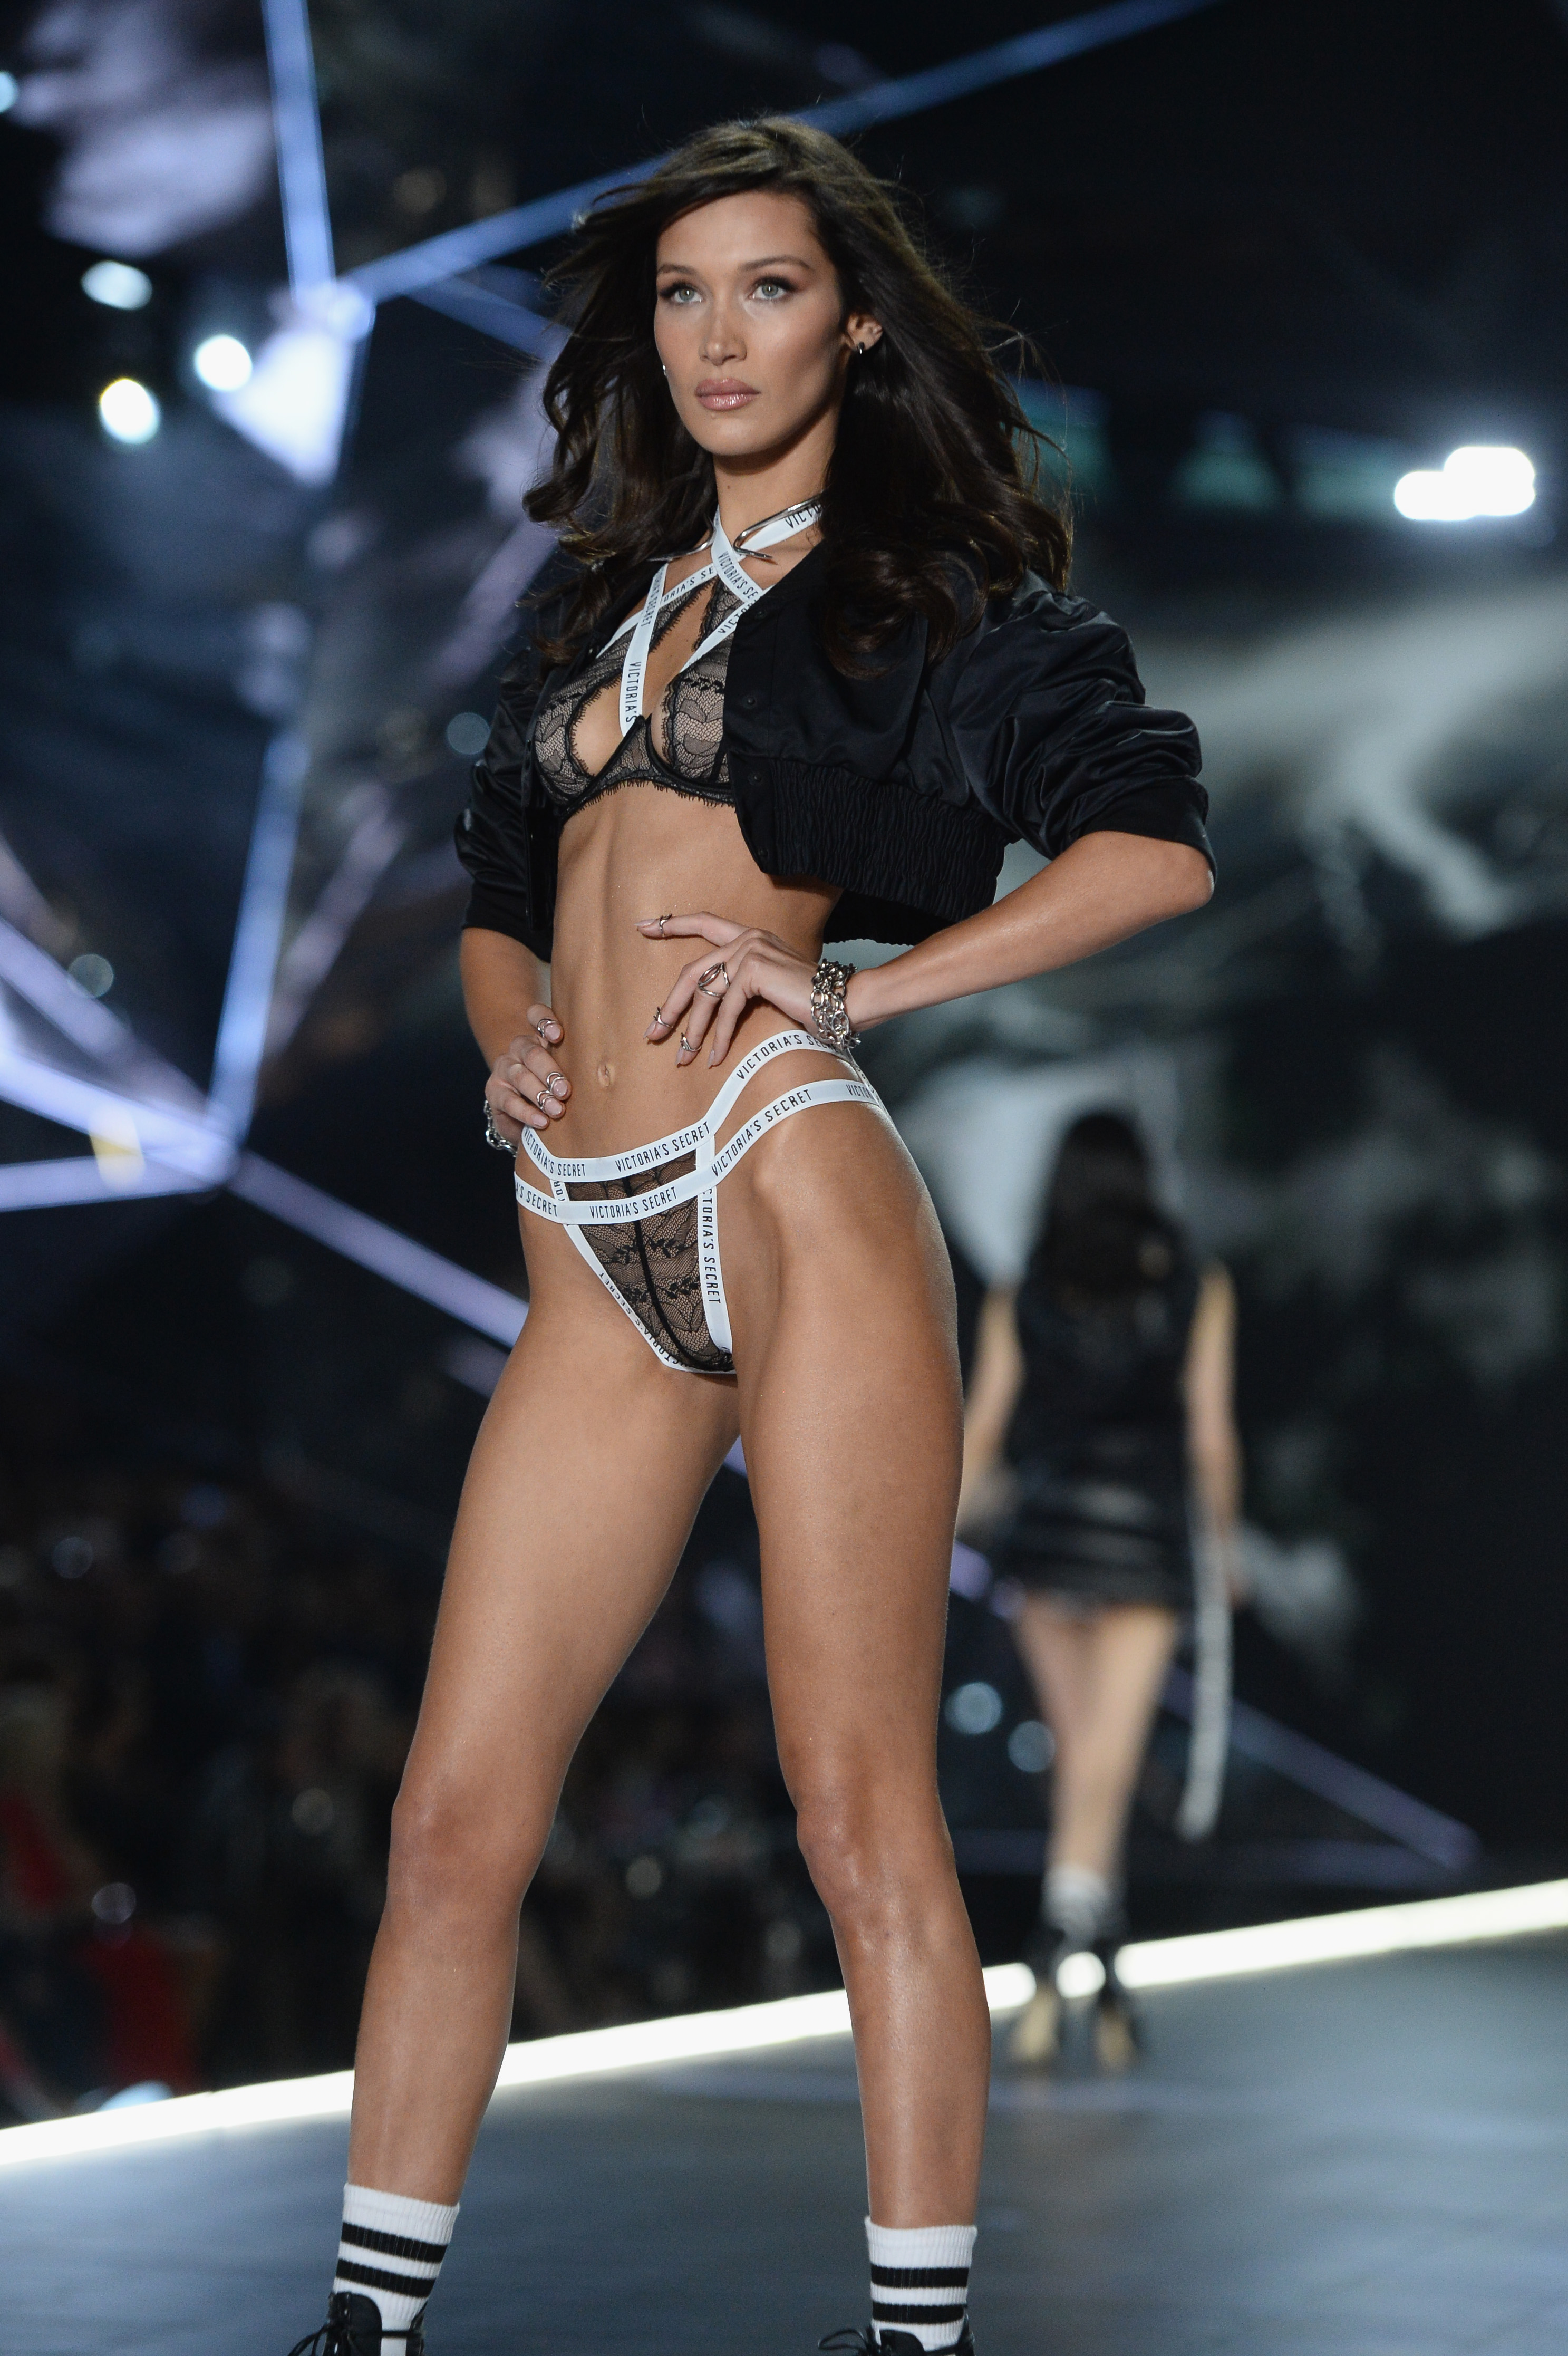 Bella Hadid walks the runway during the 2018 Victoria's Secret Fashion Show at Pier 94 on November 08, 2018, in New York City. (Getty Images)